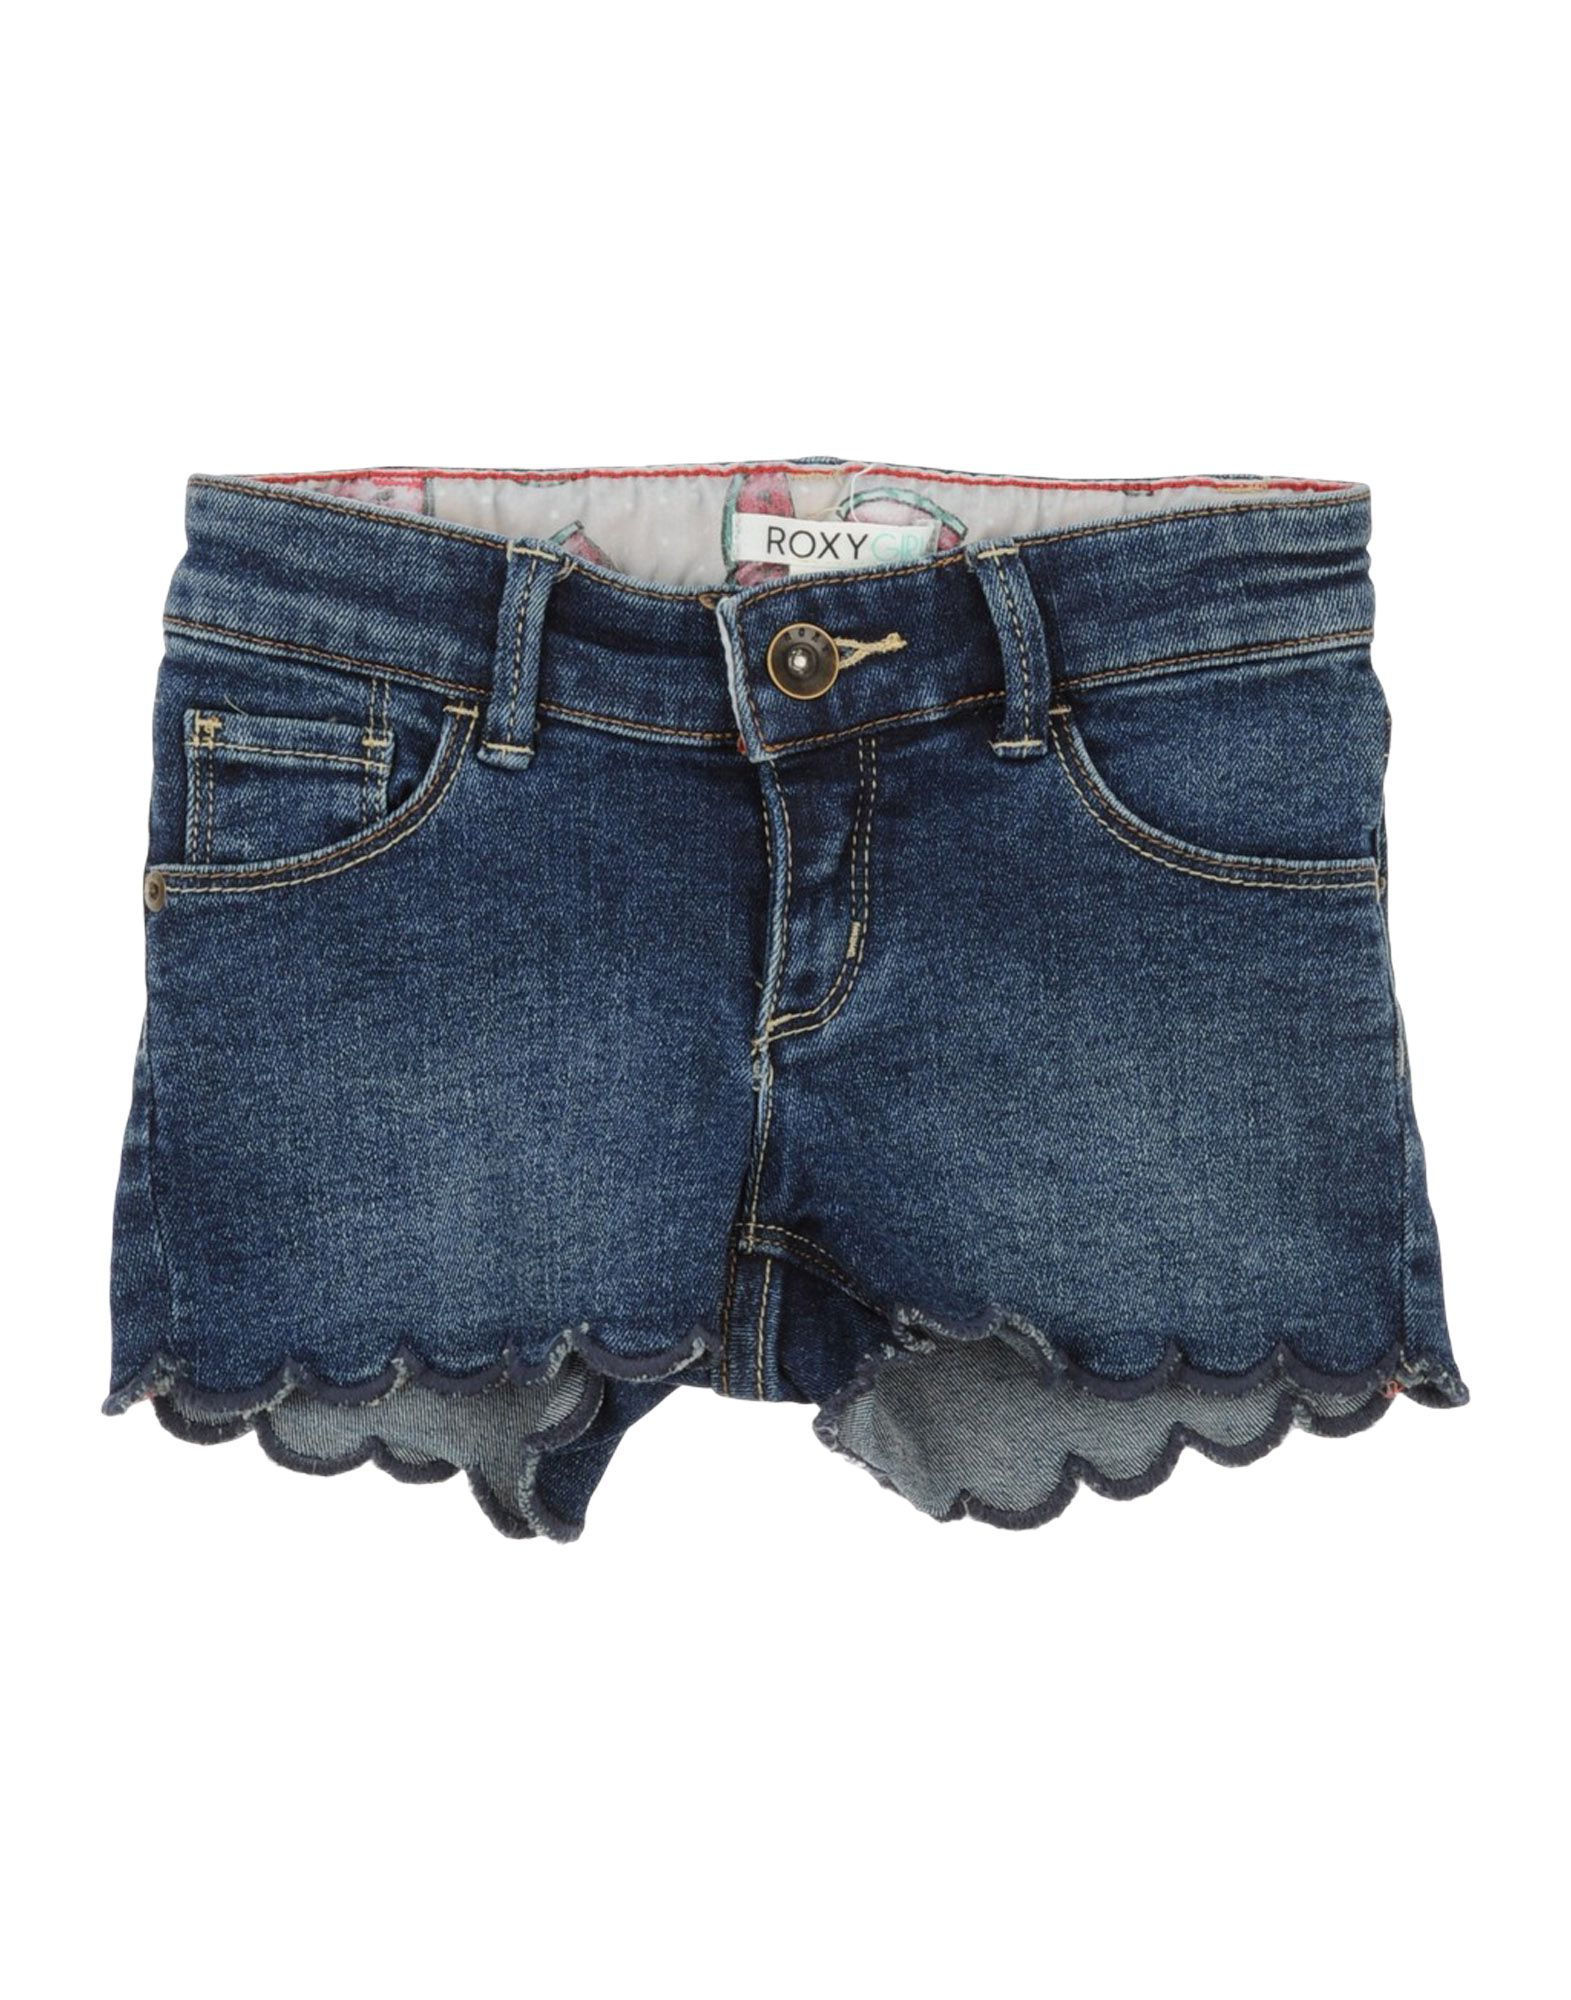 ROXY Denim shorts